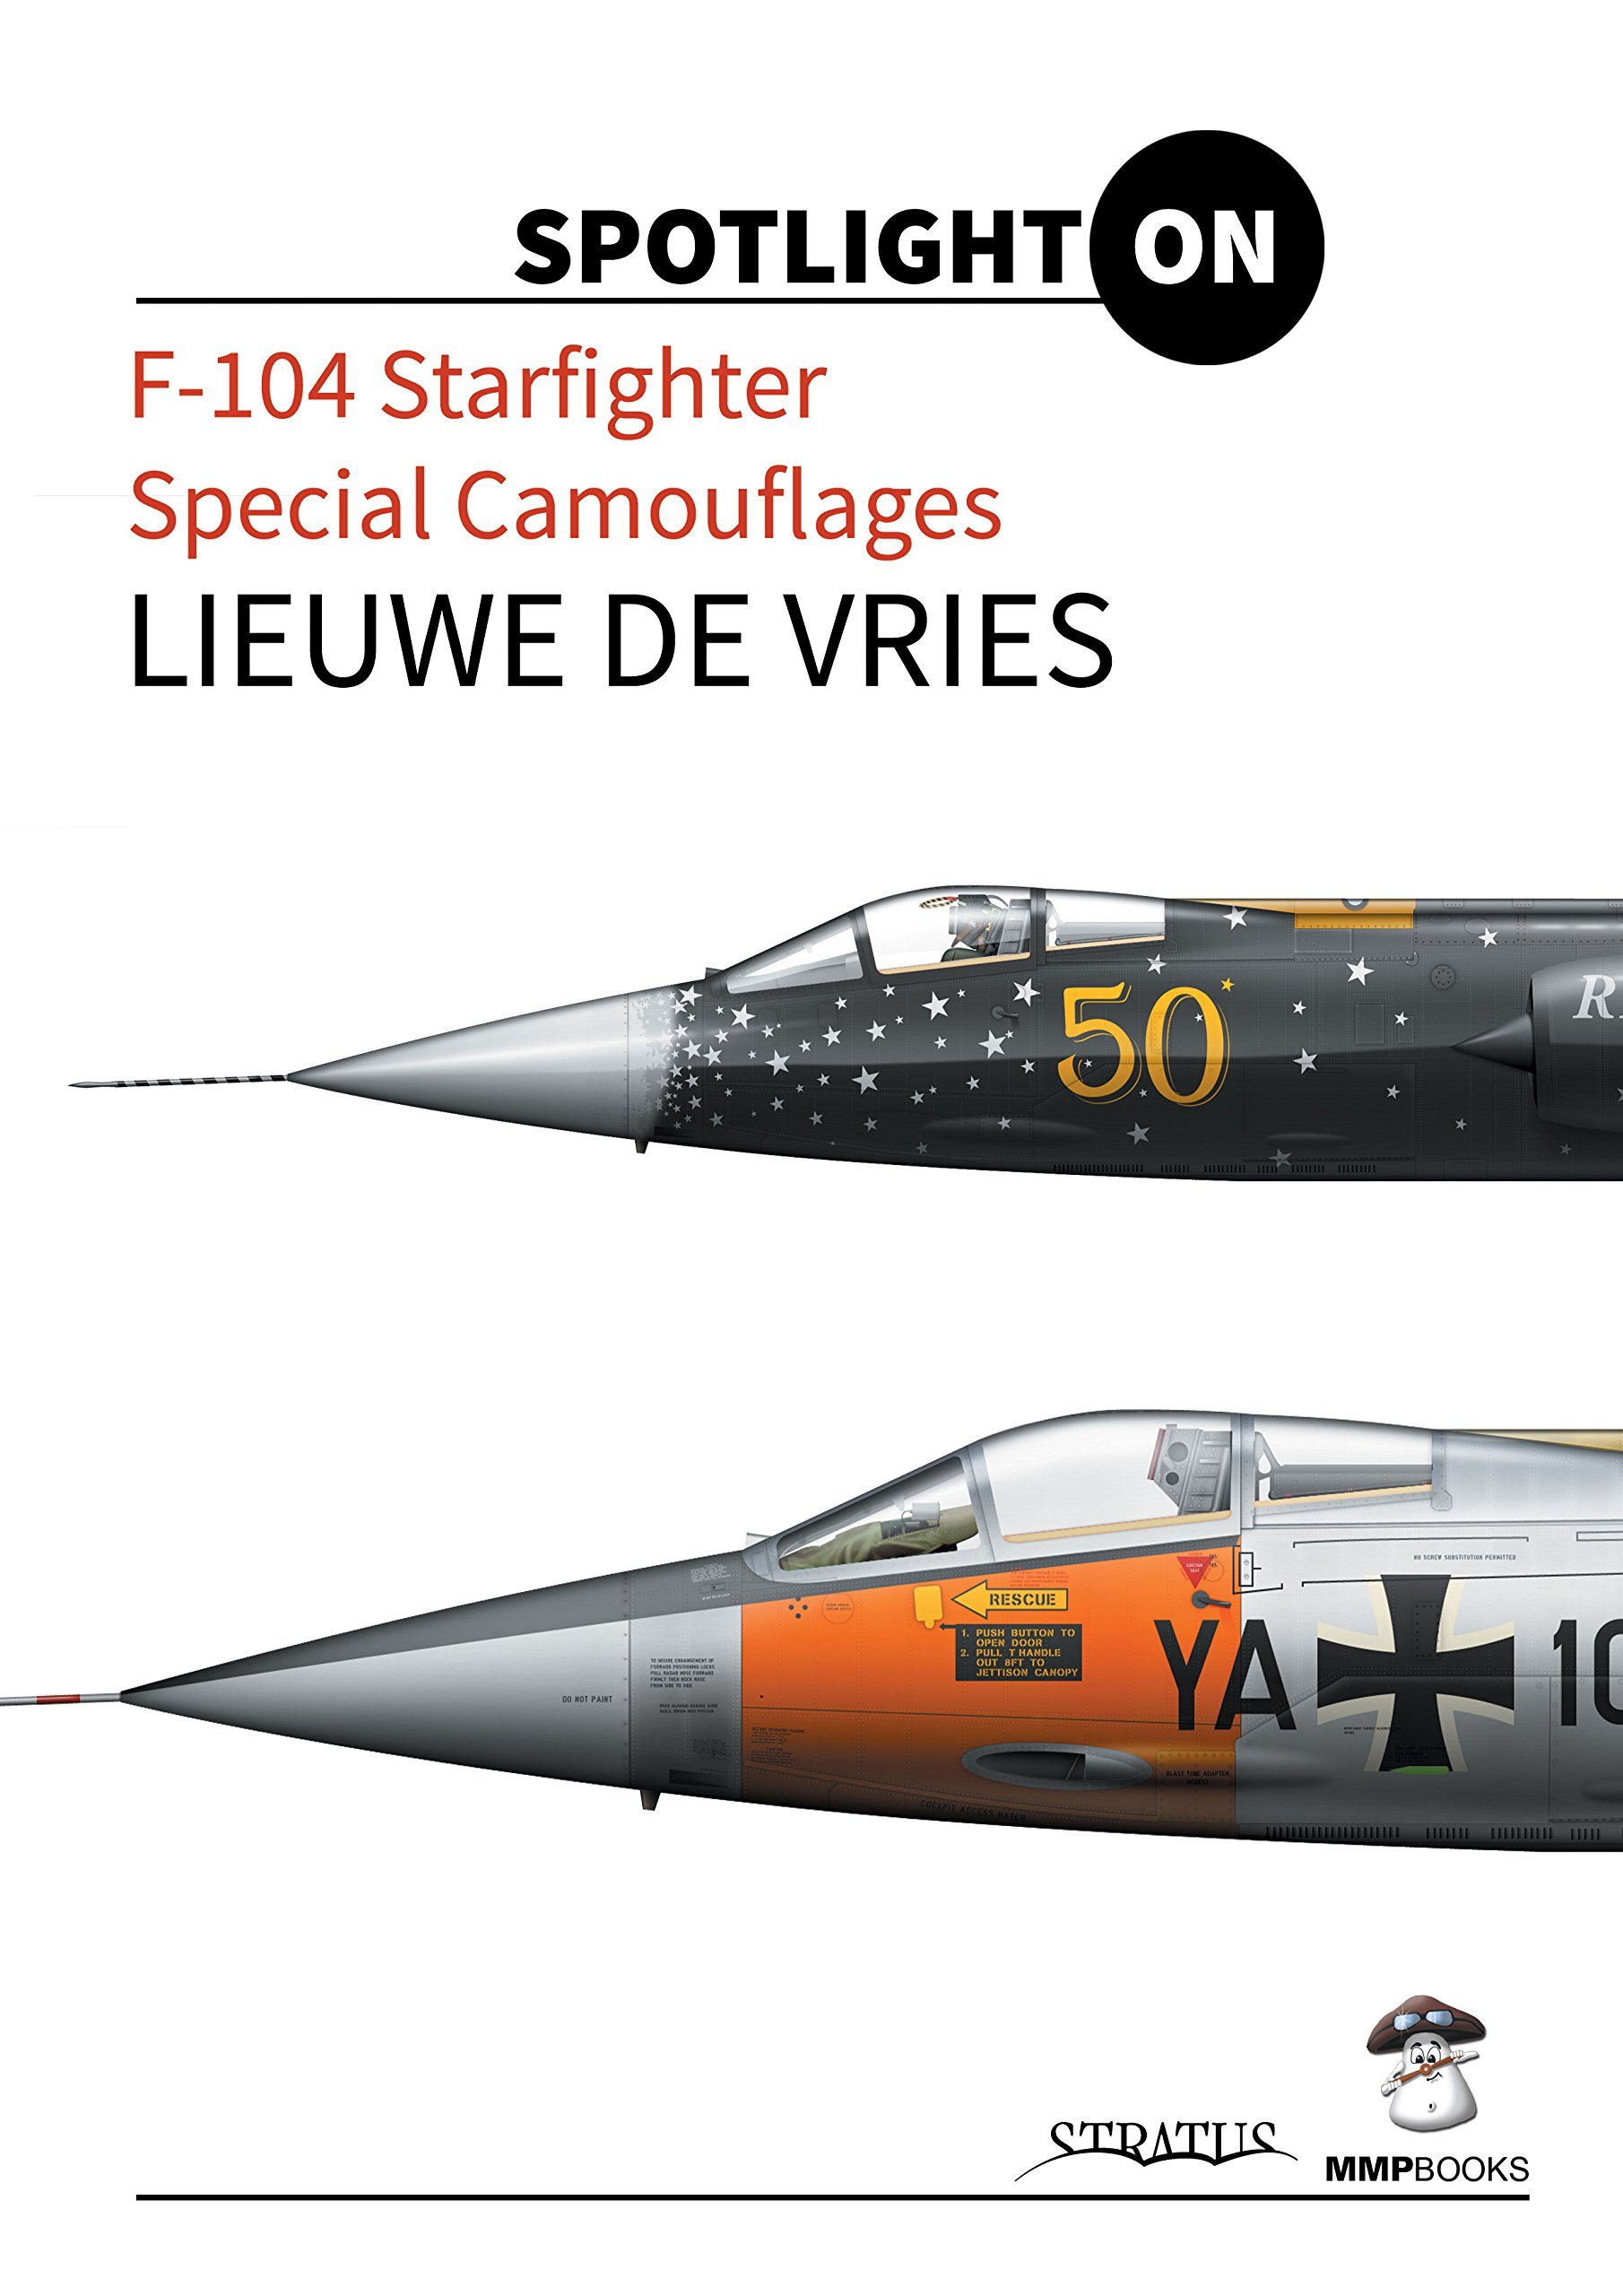 Download F-104 Starfighter Special Camouflages (Spotlight ON) ebook